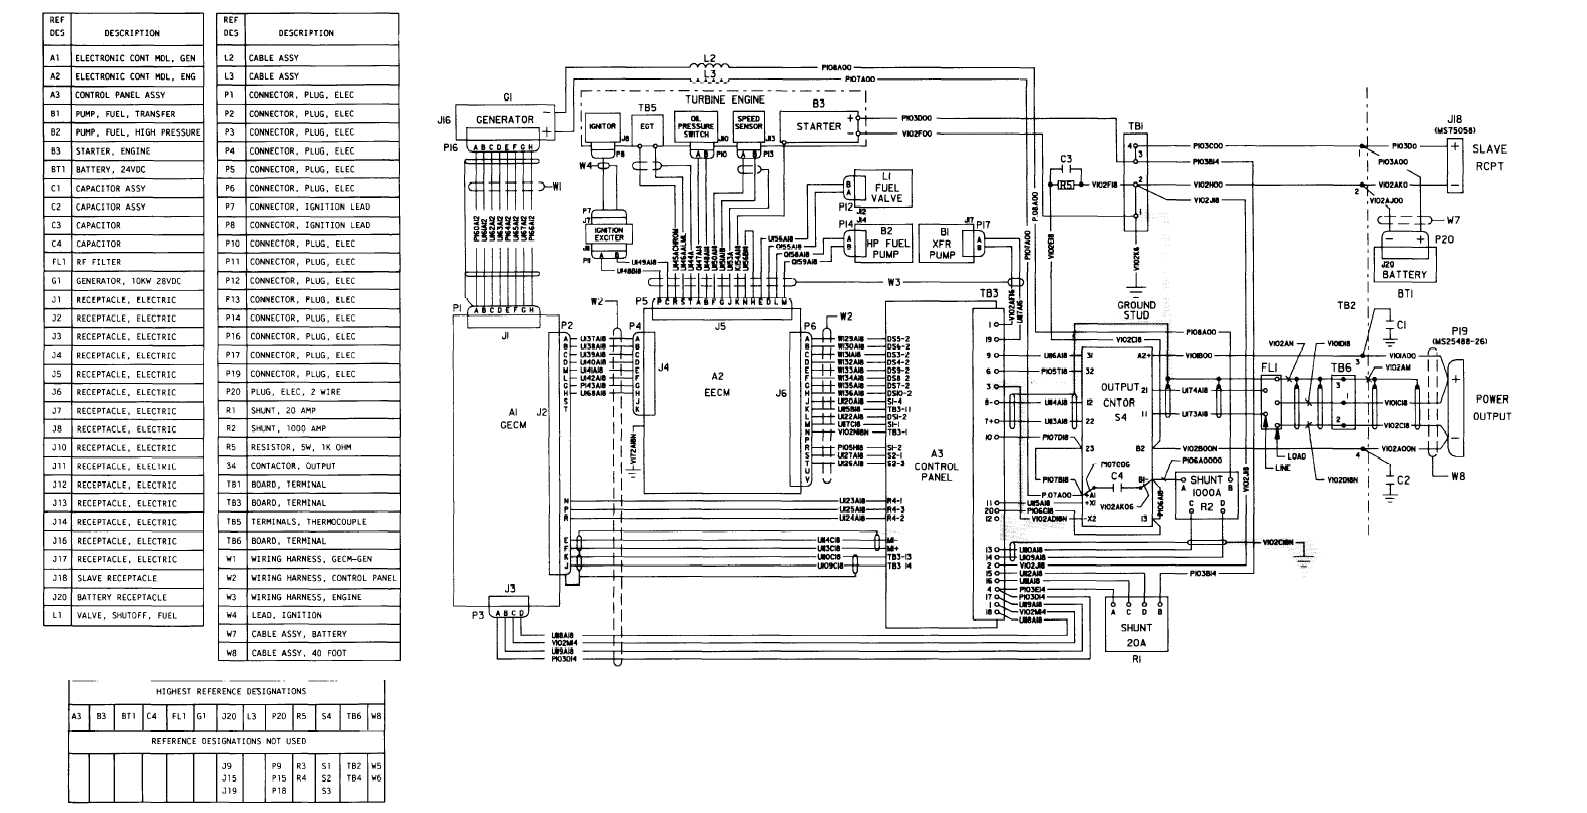 Cat 3406 Generator Wiring Diagram Archive Of Automotive 24 Hp Briggs And Stratton Fo 3 Set Rh Gasturbinegenerators Tpub Com